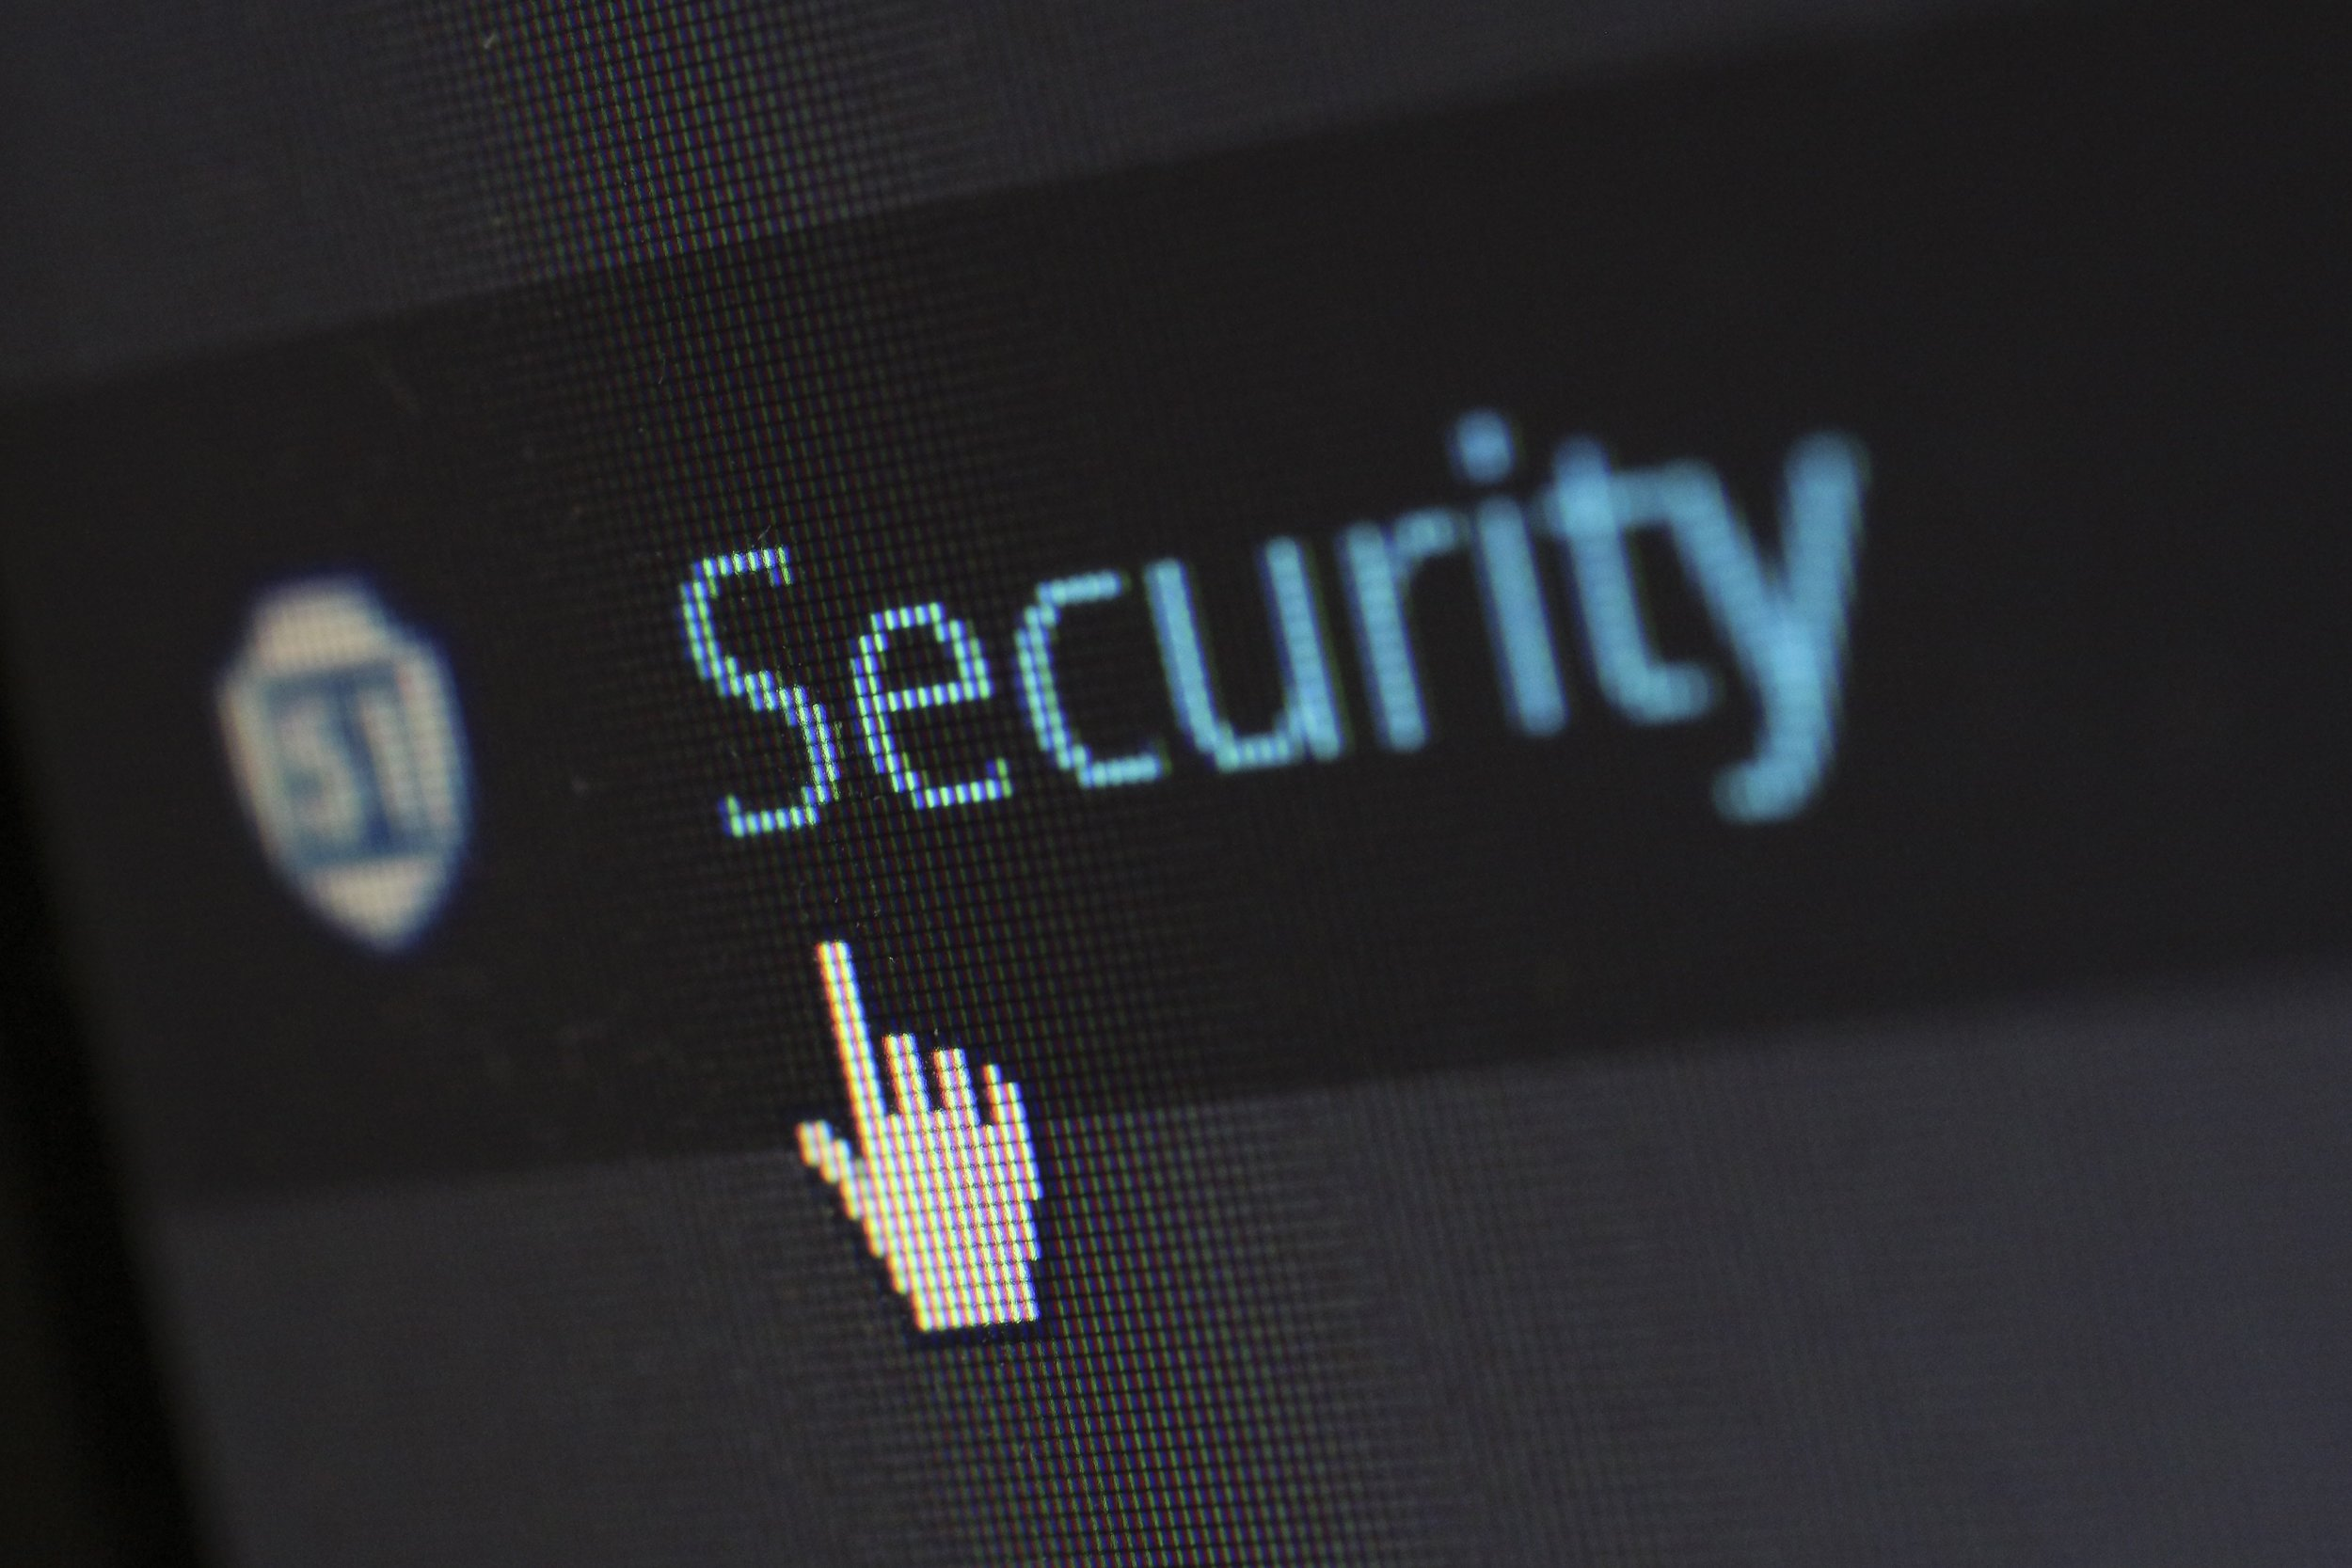 Home and business internet and device security